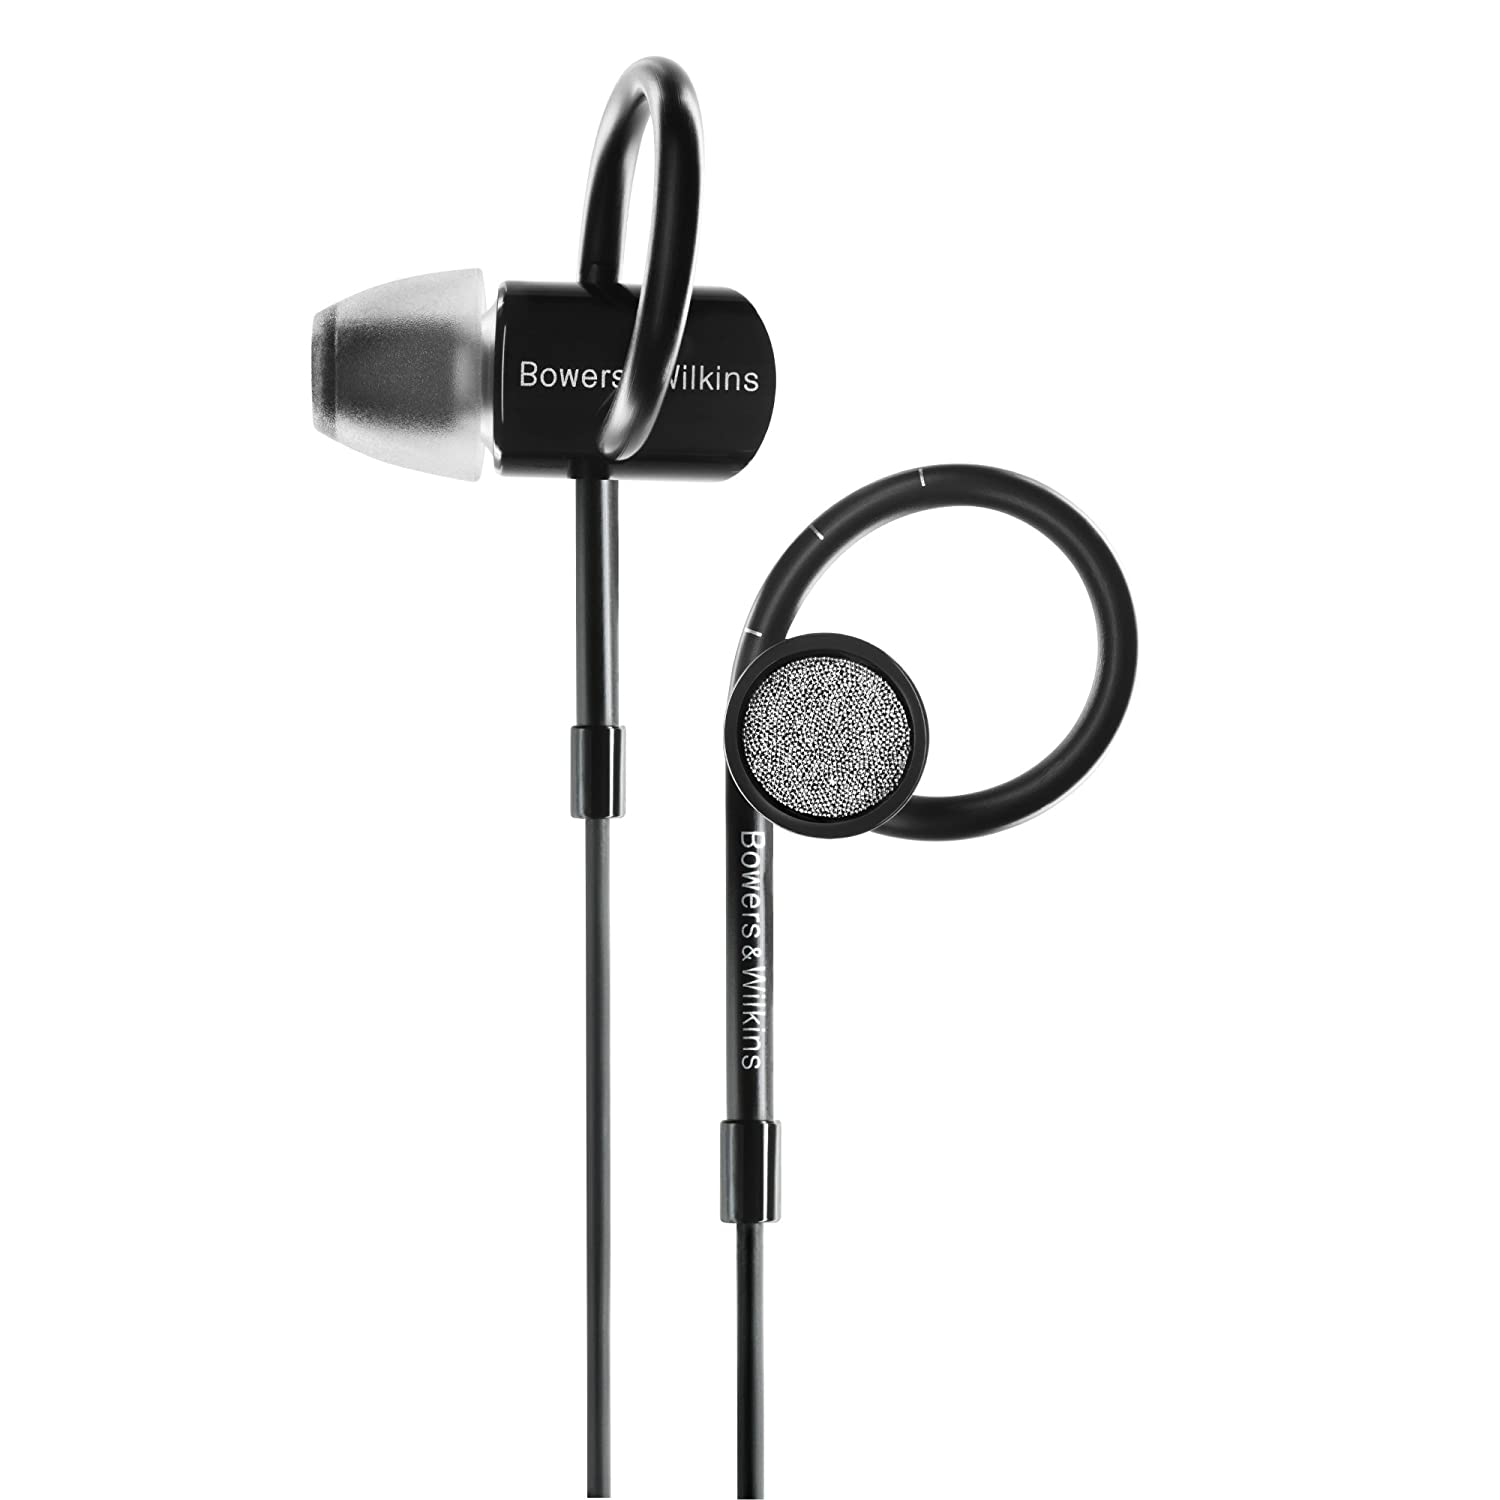 bowers andamp wilkins logo. amazon.com: bowers \u0026 wilkins c5 series 2 in-ear headphones, secure fit, black: home audio theater andamp logo